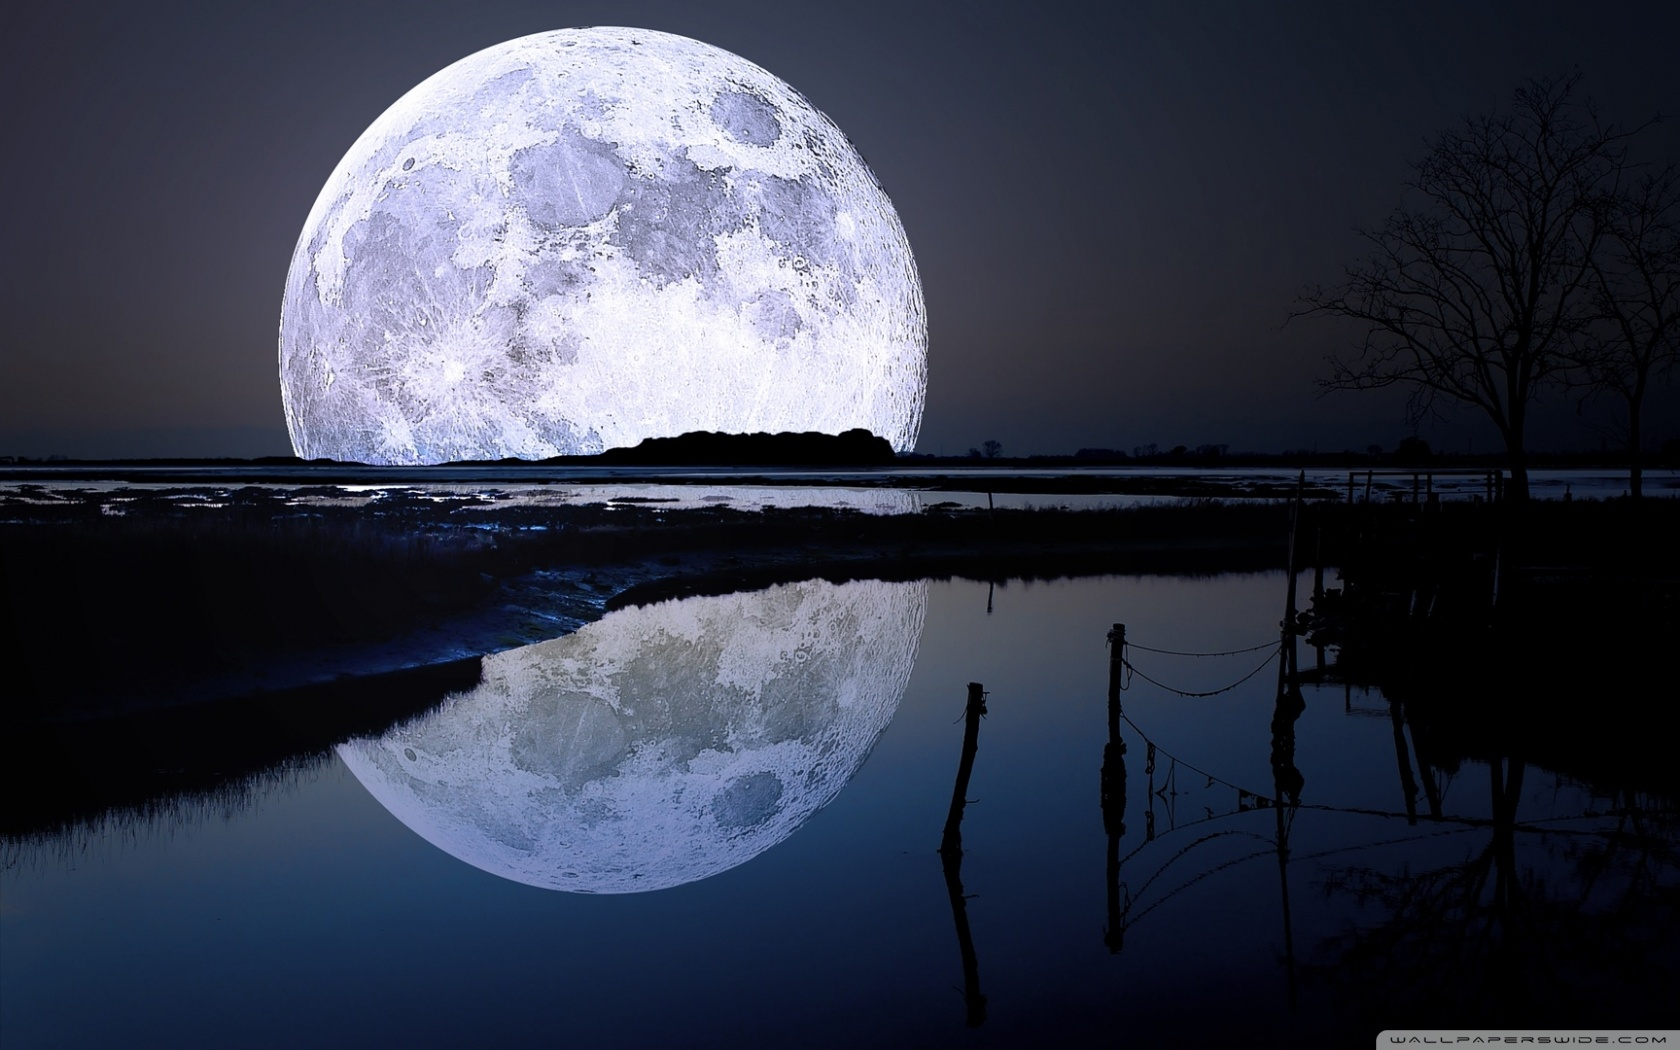 full_moon_reflection-wallpaper-1680x1050.jpg